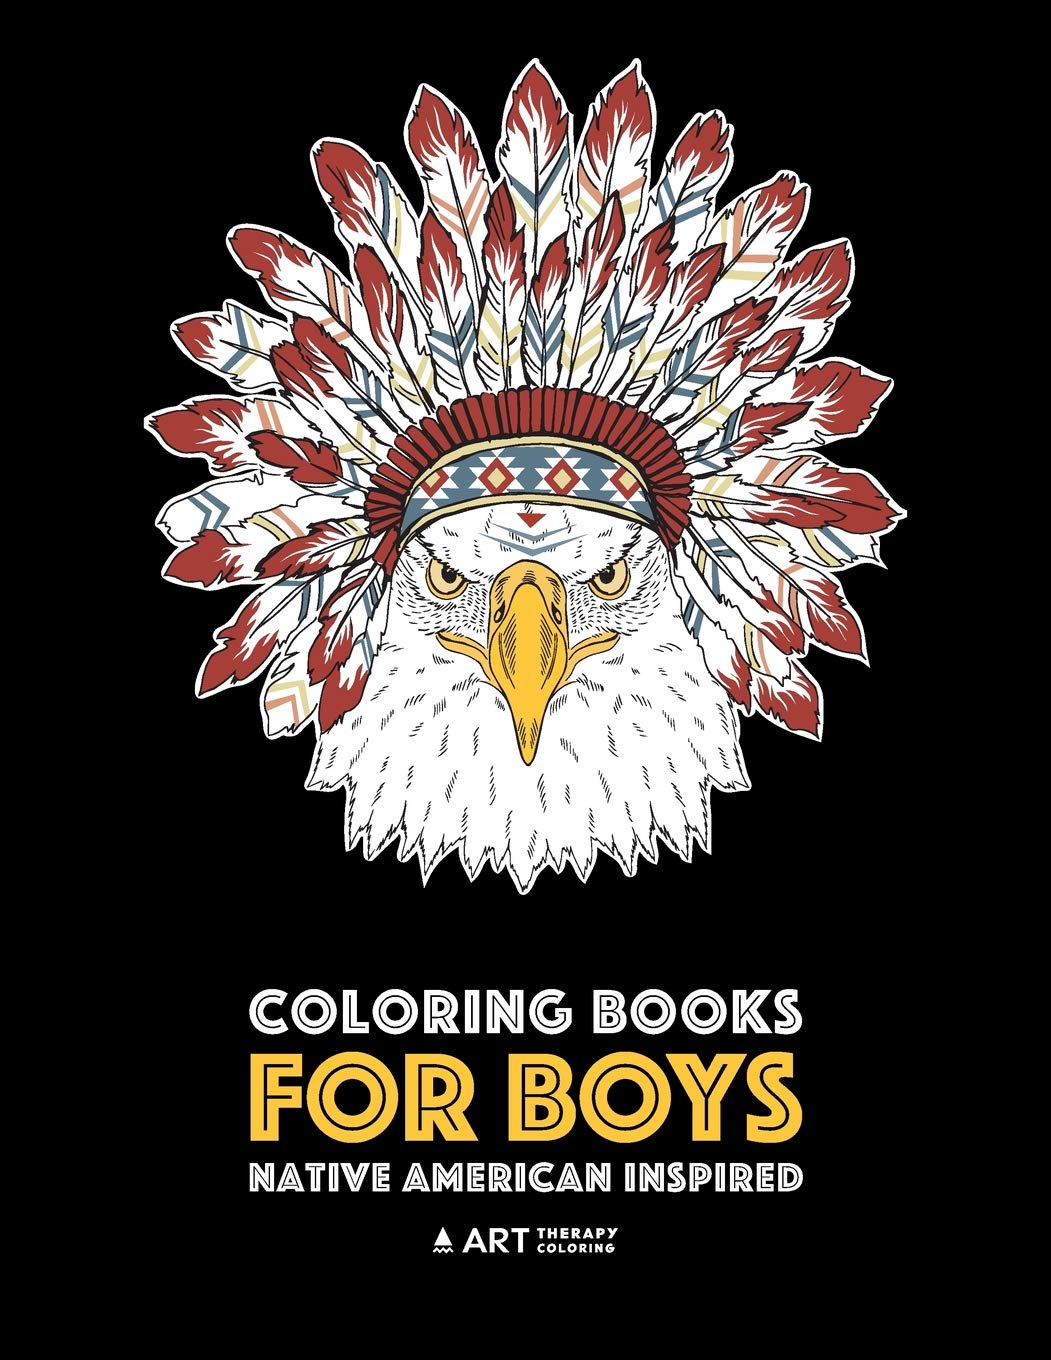 Coloring Books For Boys: Native American Inspired: Detailed Coloring Pages For Older Boys & Teens; Lions, Tigers, Wolves, Leopards, Eagles, Owls, Snakes, Other Animals & Skulls; Relaxing Designs PDF